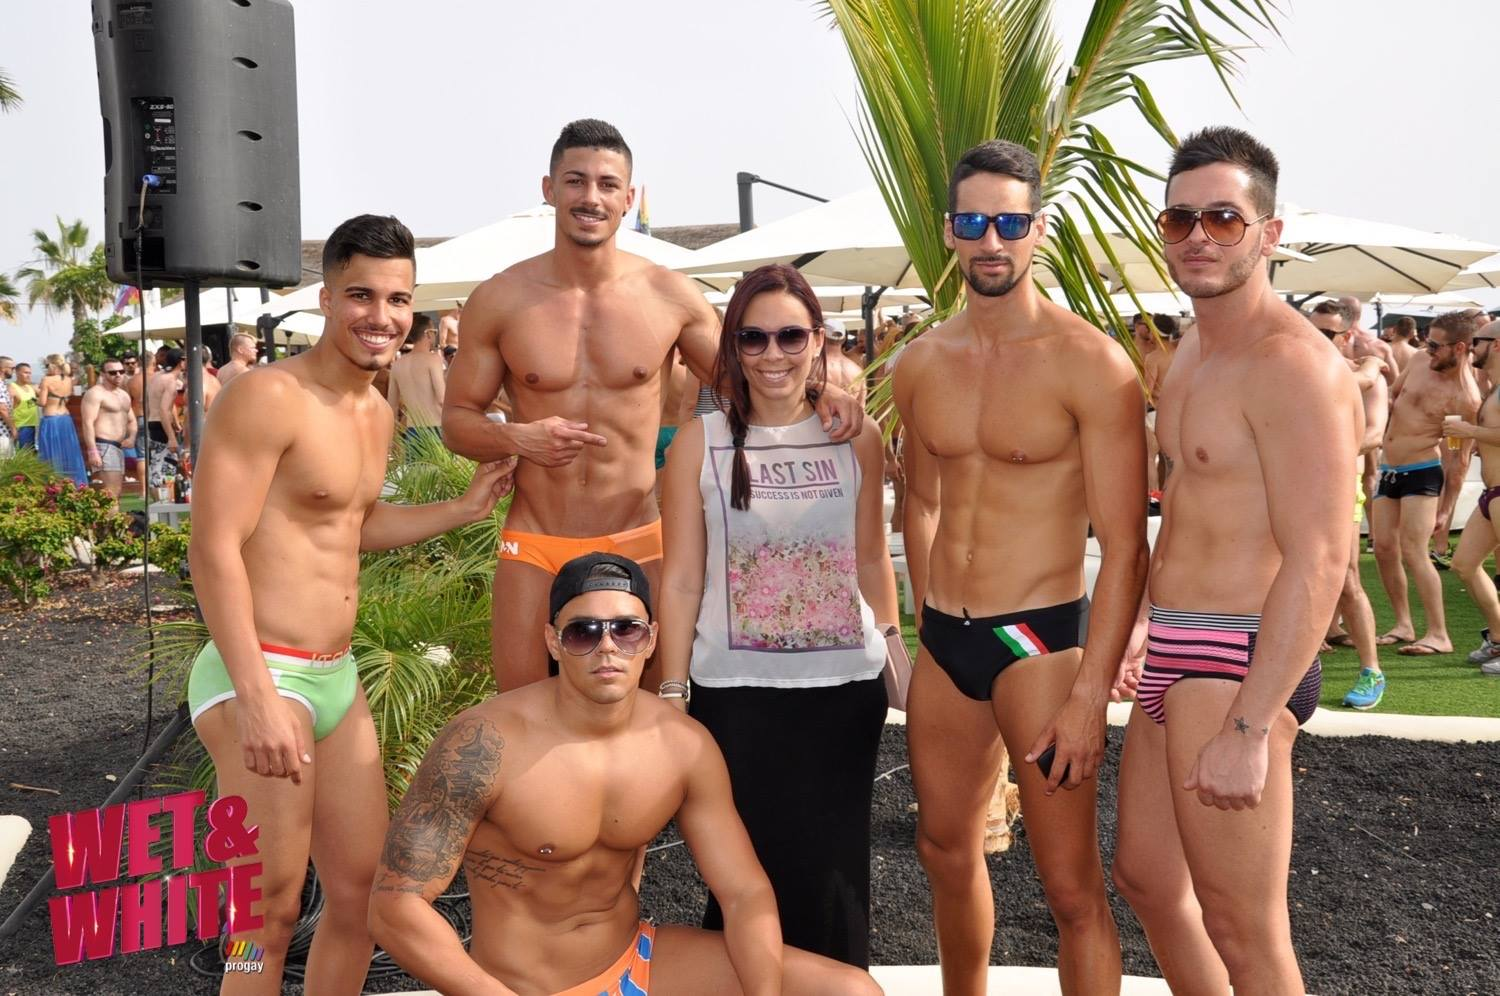 rencontre homme gay resorts à Le Blanc-Mesnil